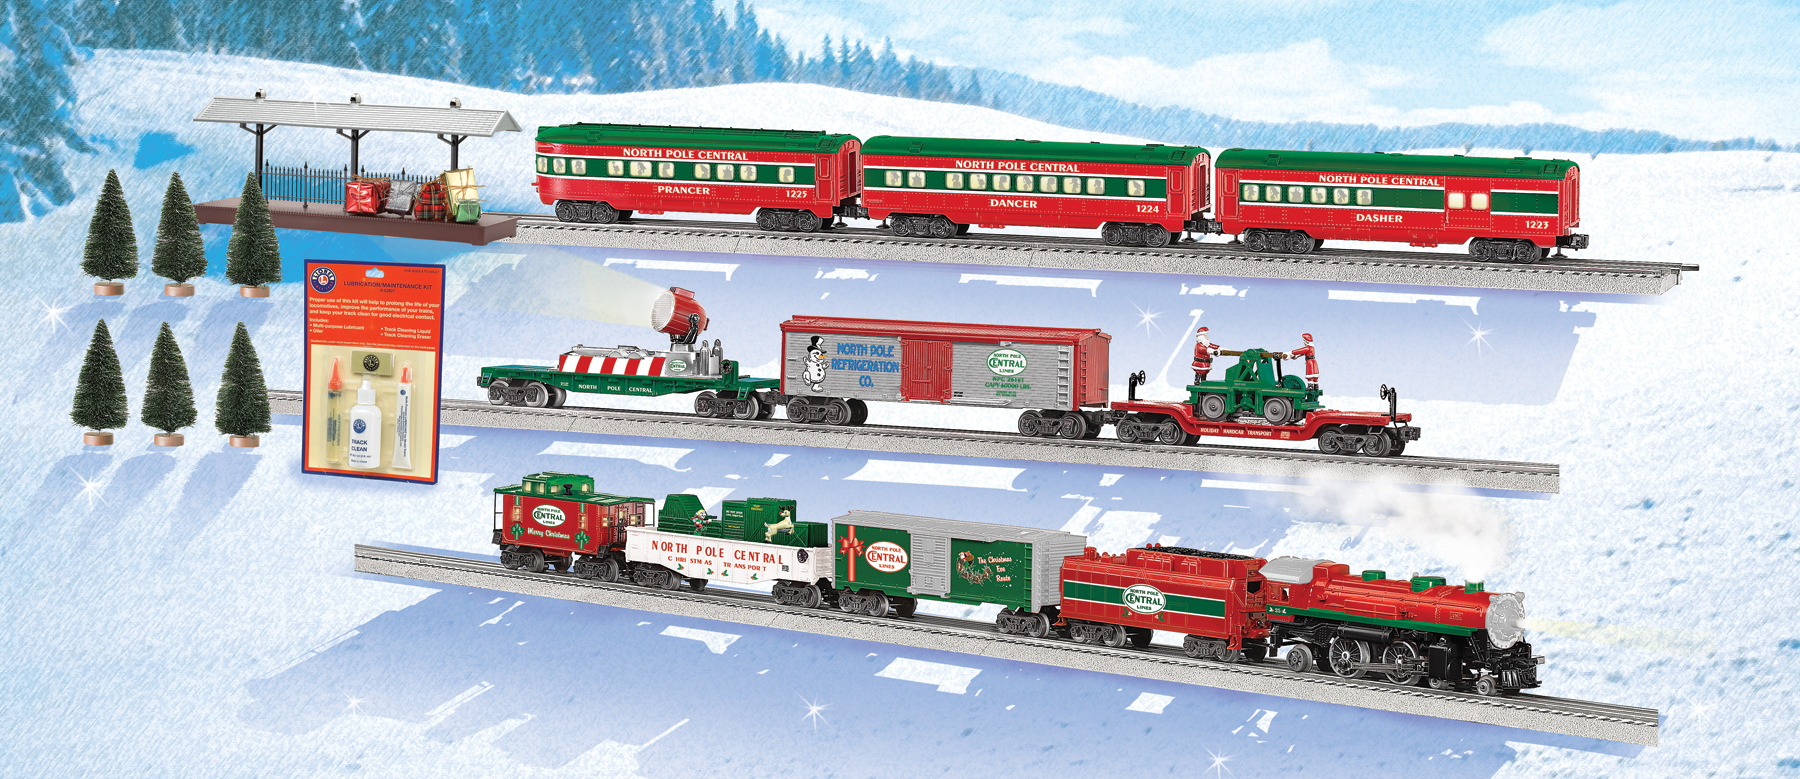 North Pole Central Christmas Train (Conventional 4-4-2 Steam Loco #25)